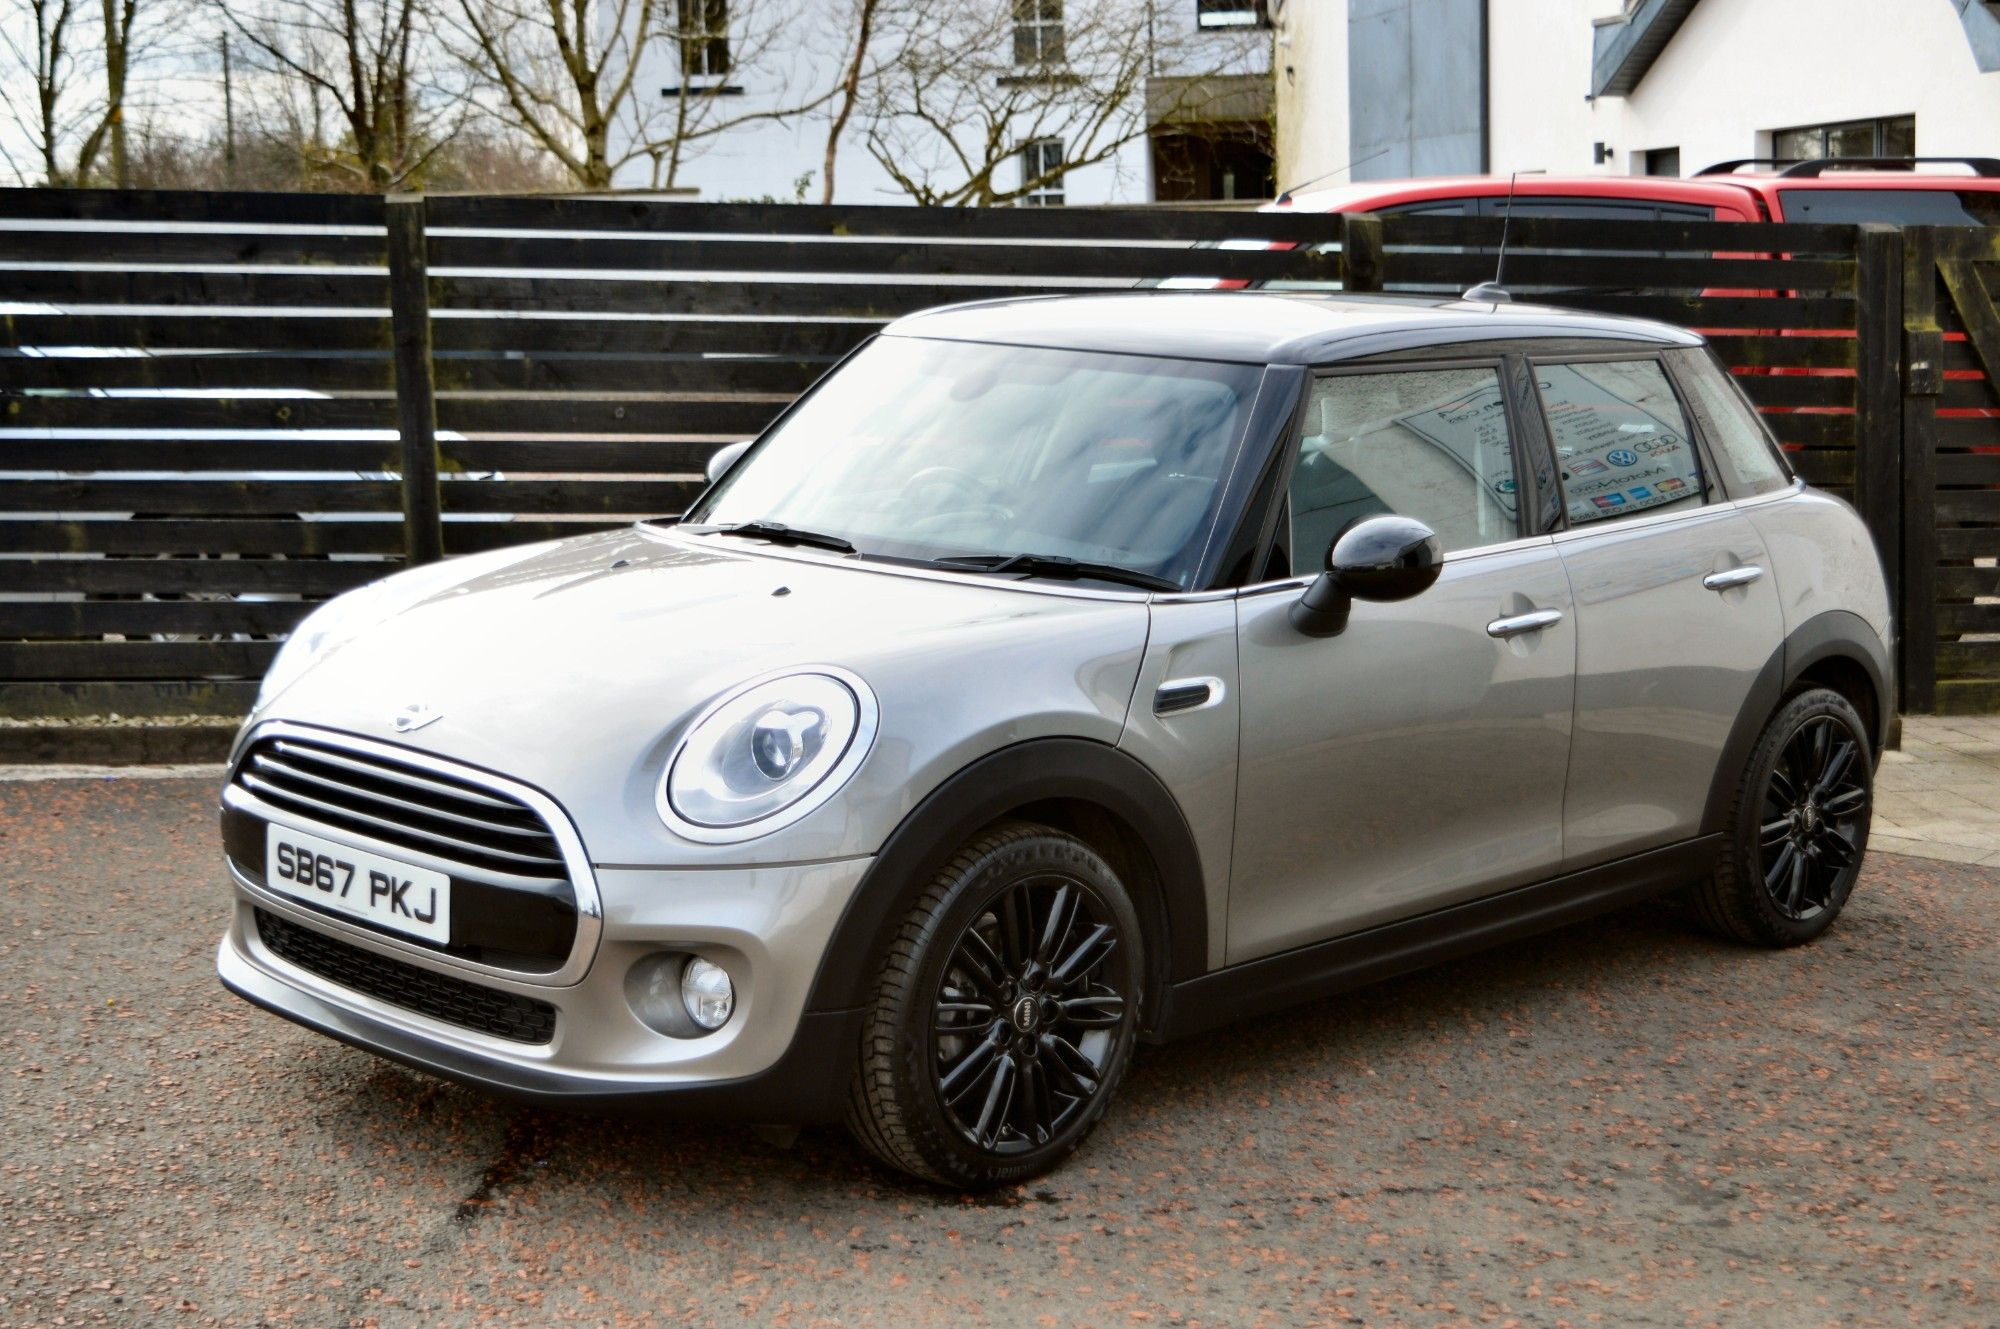 USED 2017 67 MINI HATCH COOPER 1.5 COOPER D 5d 114 BHP 6 MONTHS RAC WARRANTY FREE + 12 MONTHS ROAD SIDE RECOVERY!